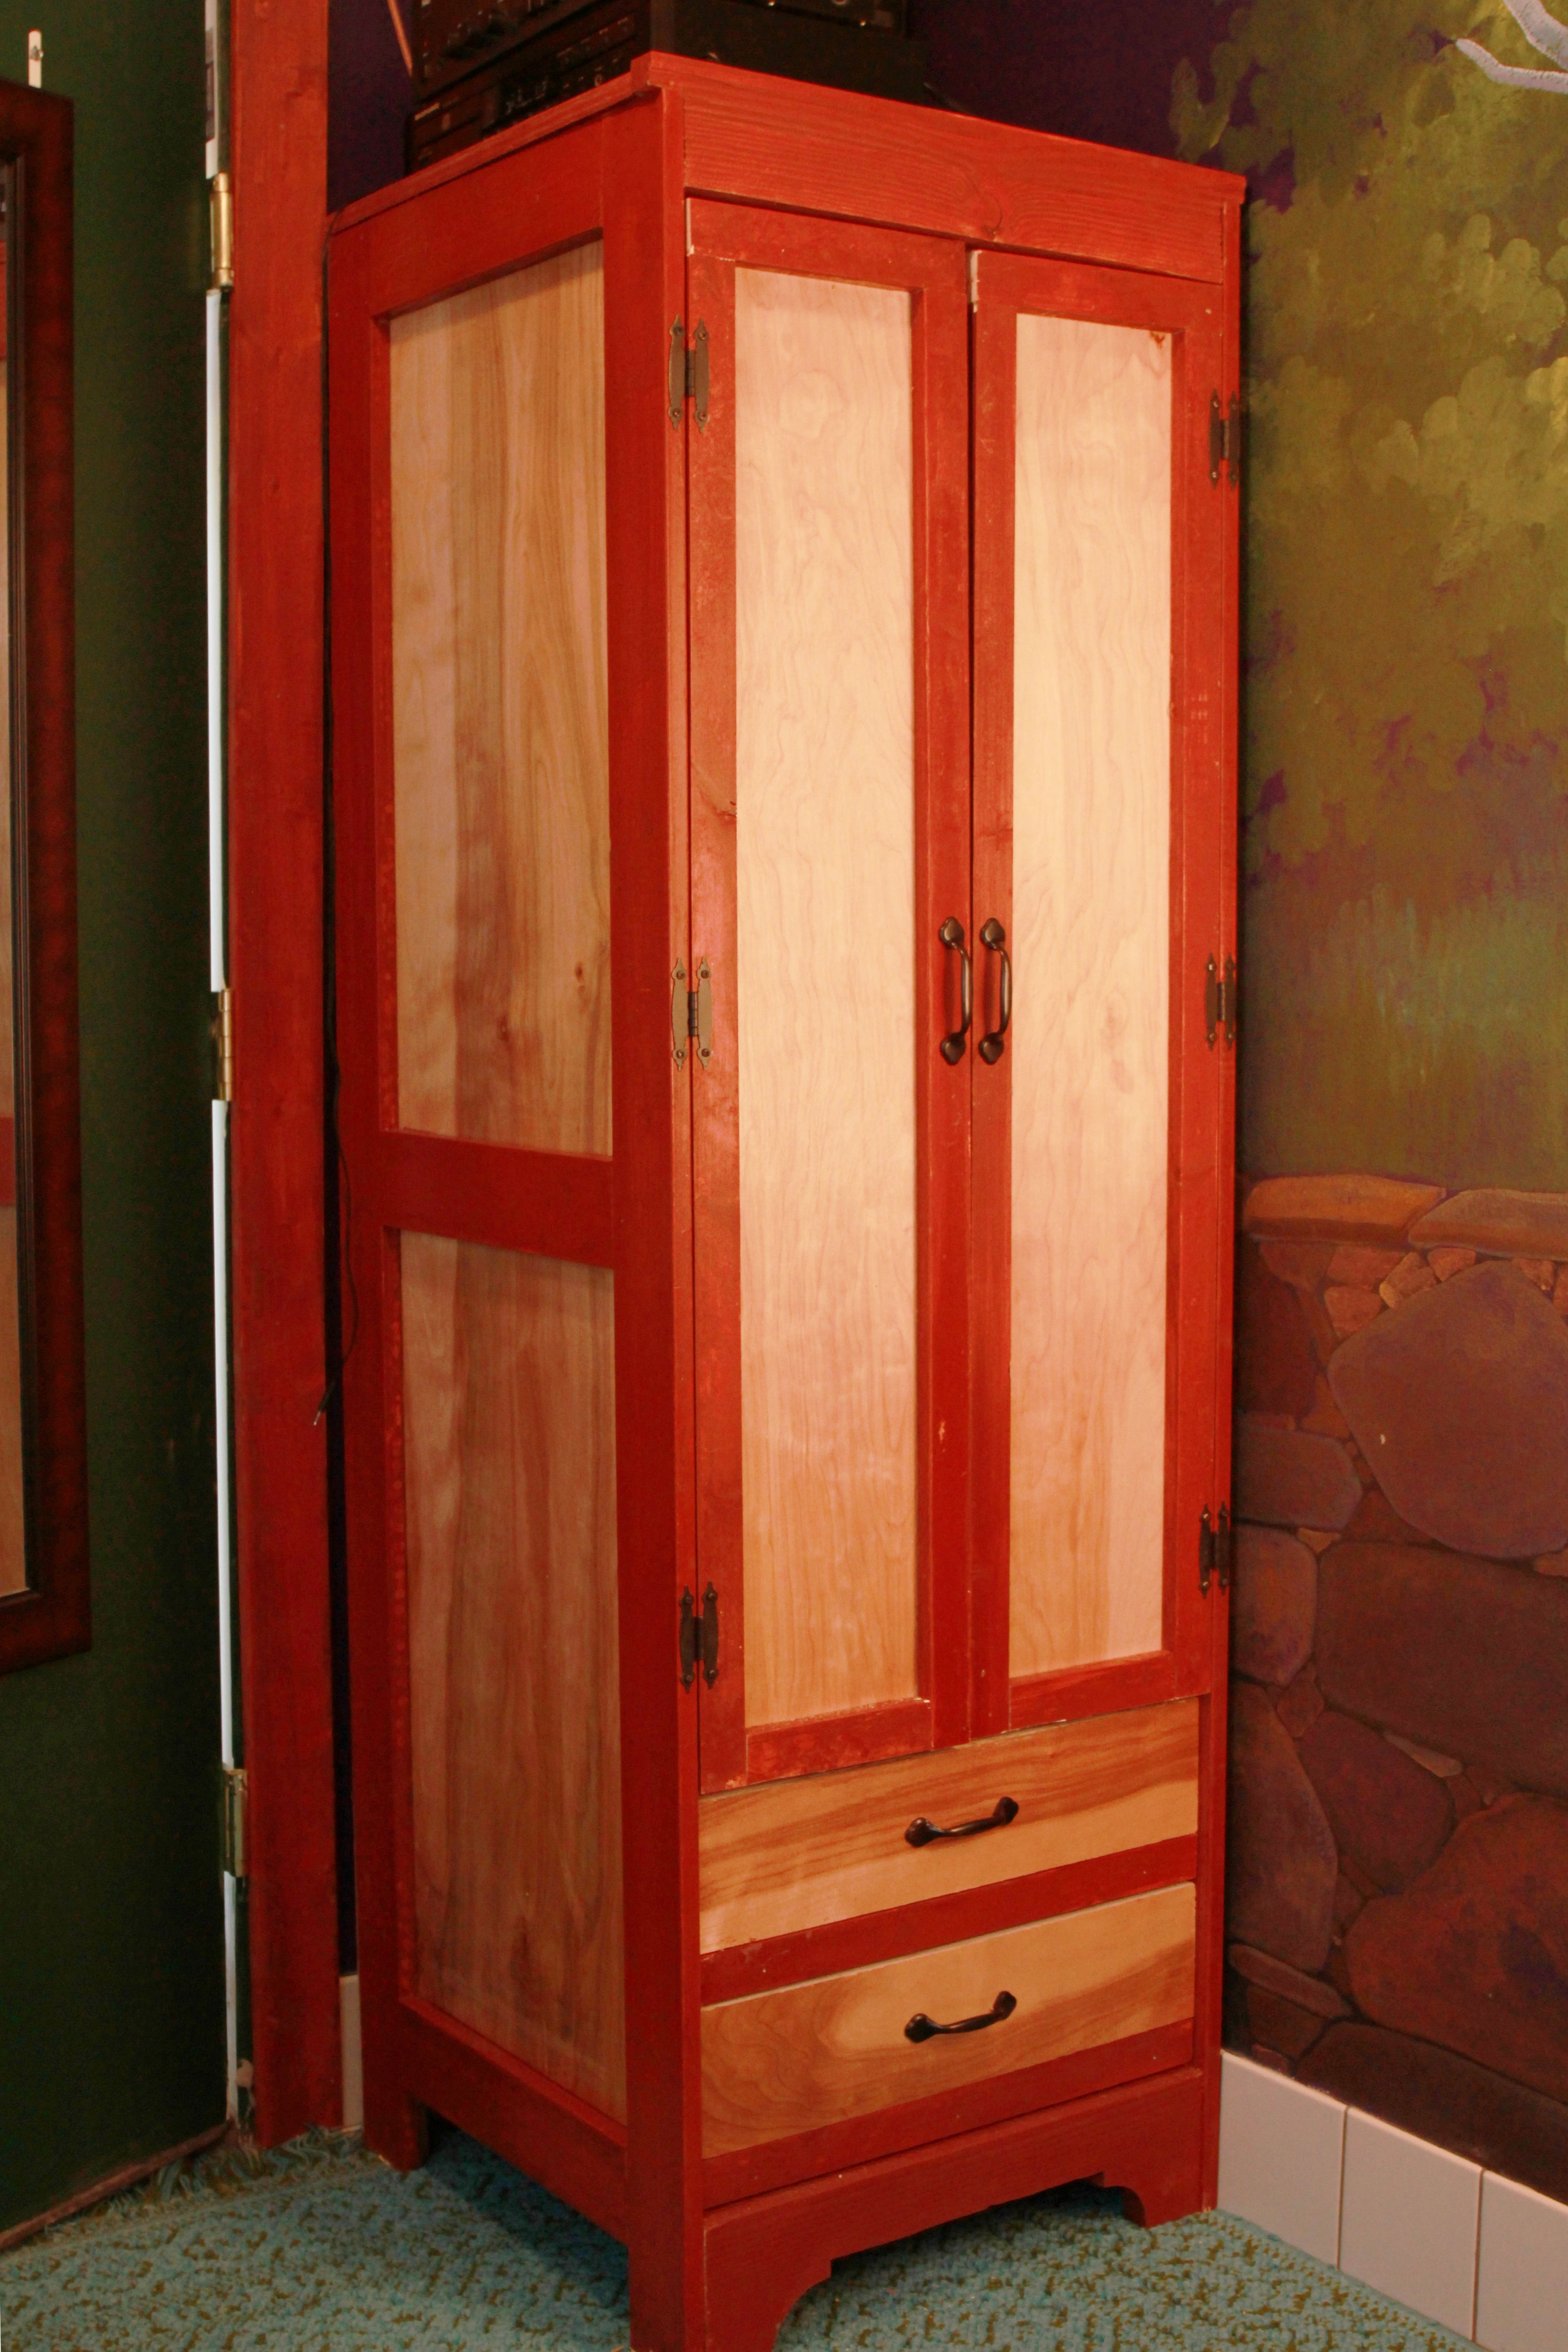 Tall narrow wardrobe for tiny house do it yourself home projects tall narrow wardrobe for tiny house diy projects solutioingenieria Image collections